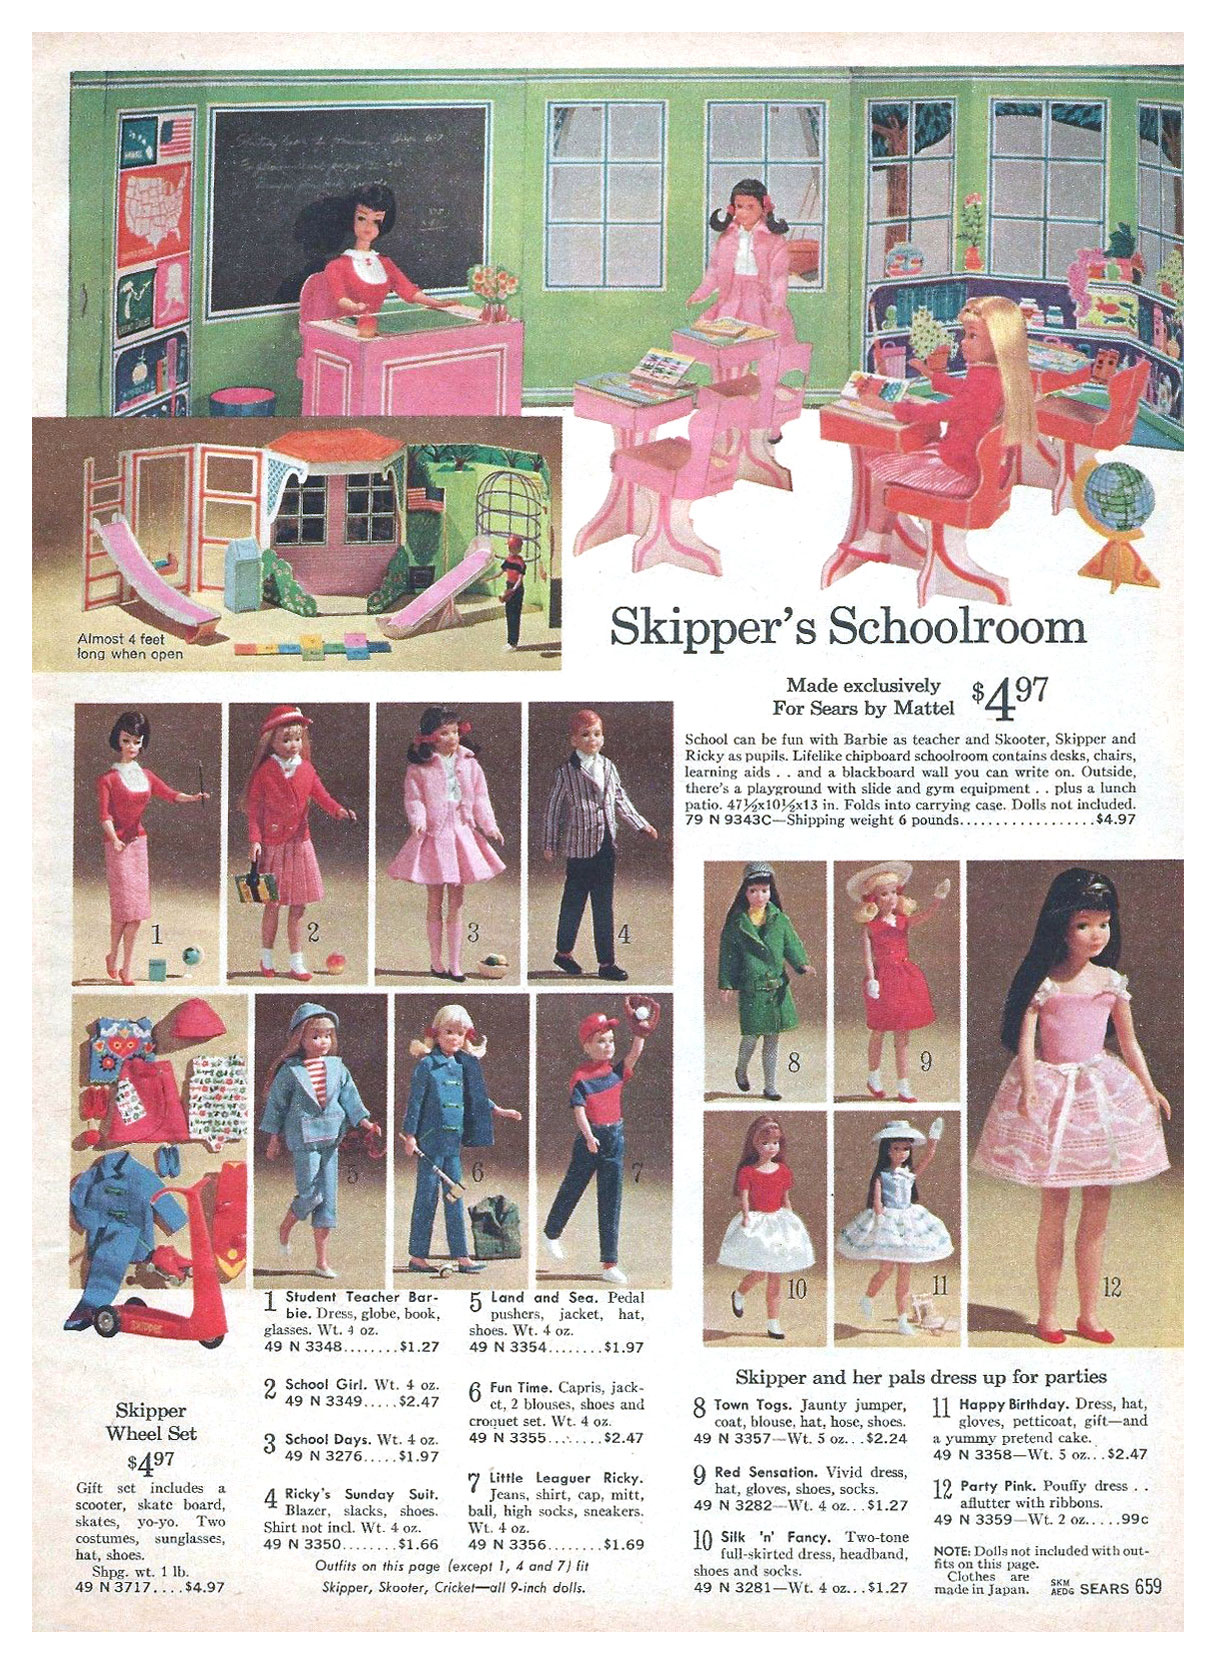 From 1965 Sears Christmas catalogue